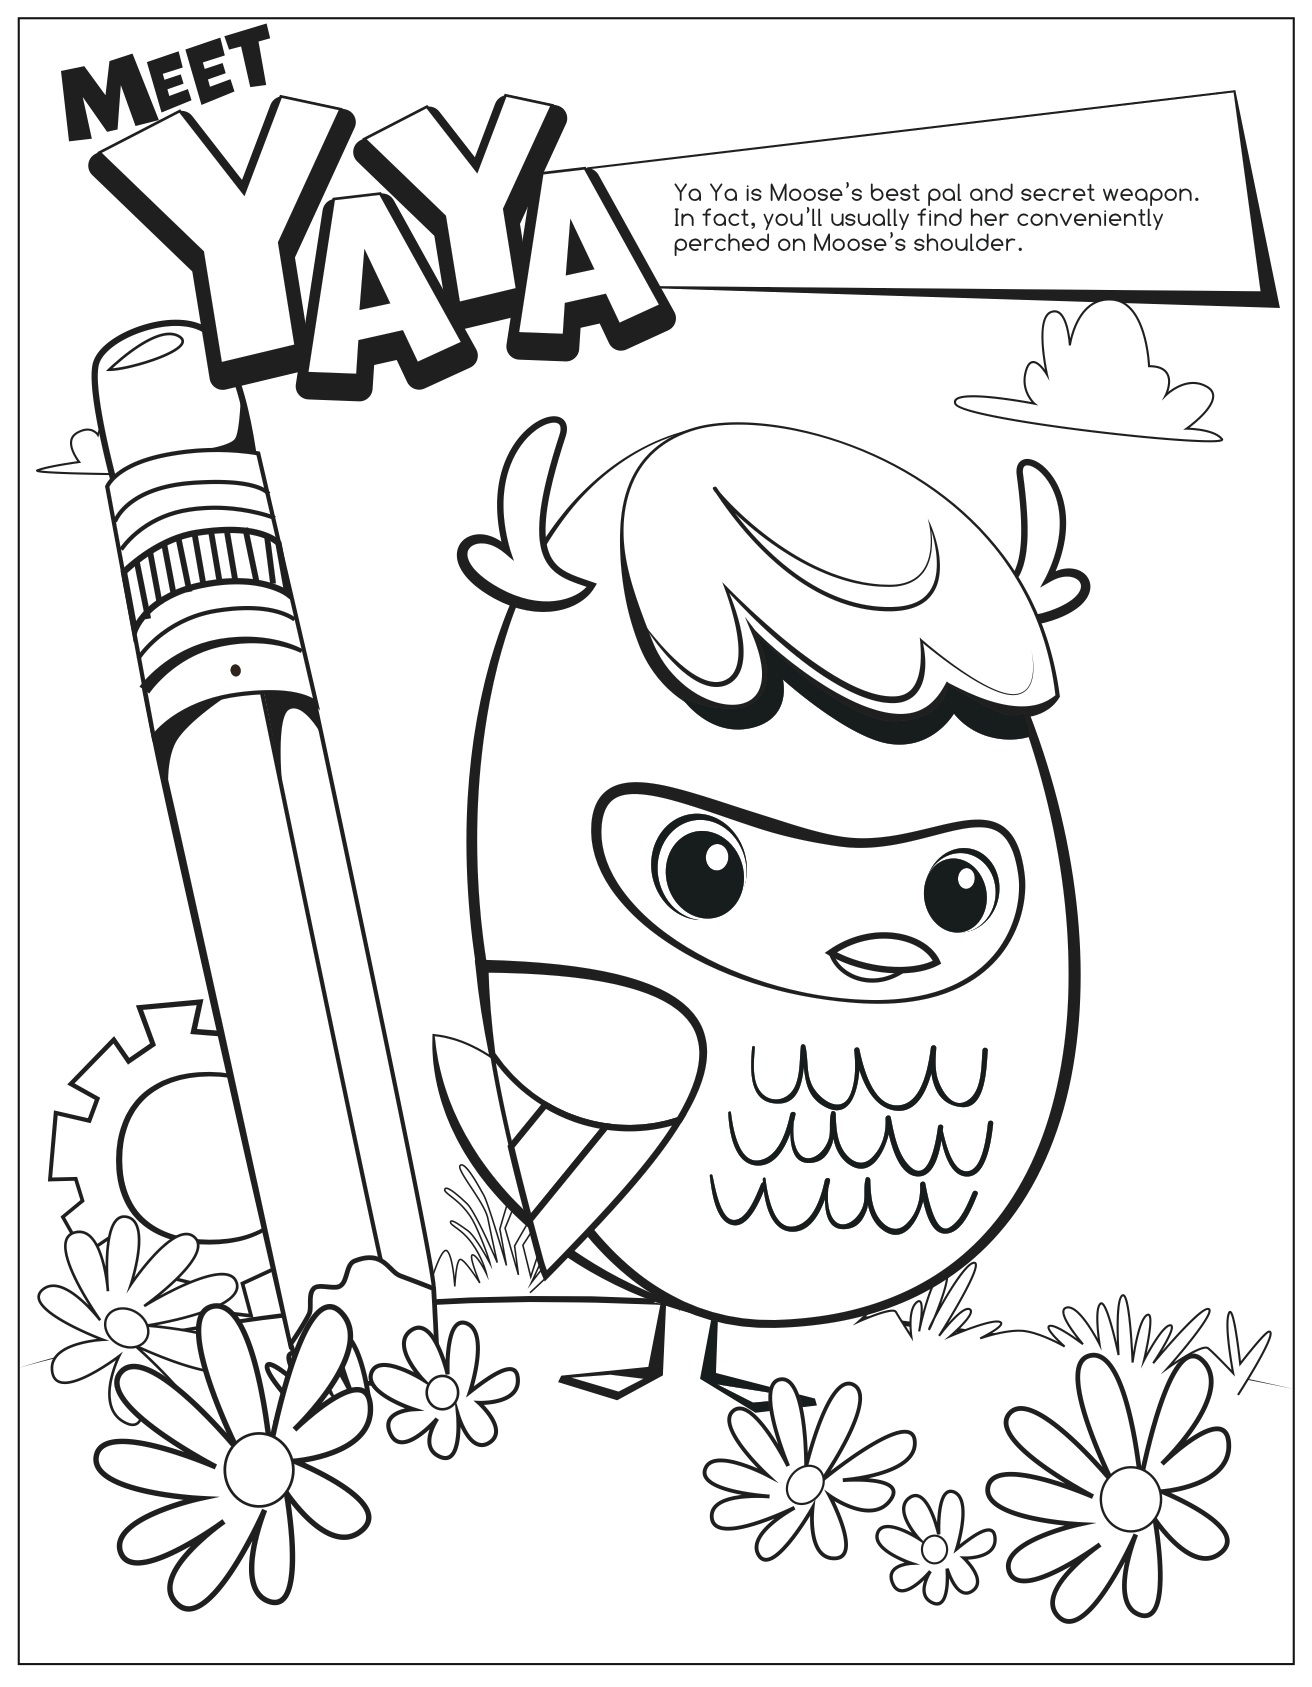 Free Math Coloring Pages at GetDrawings.com   Free for personal use ...